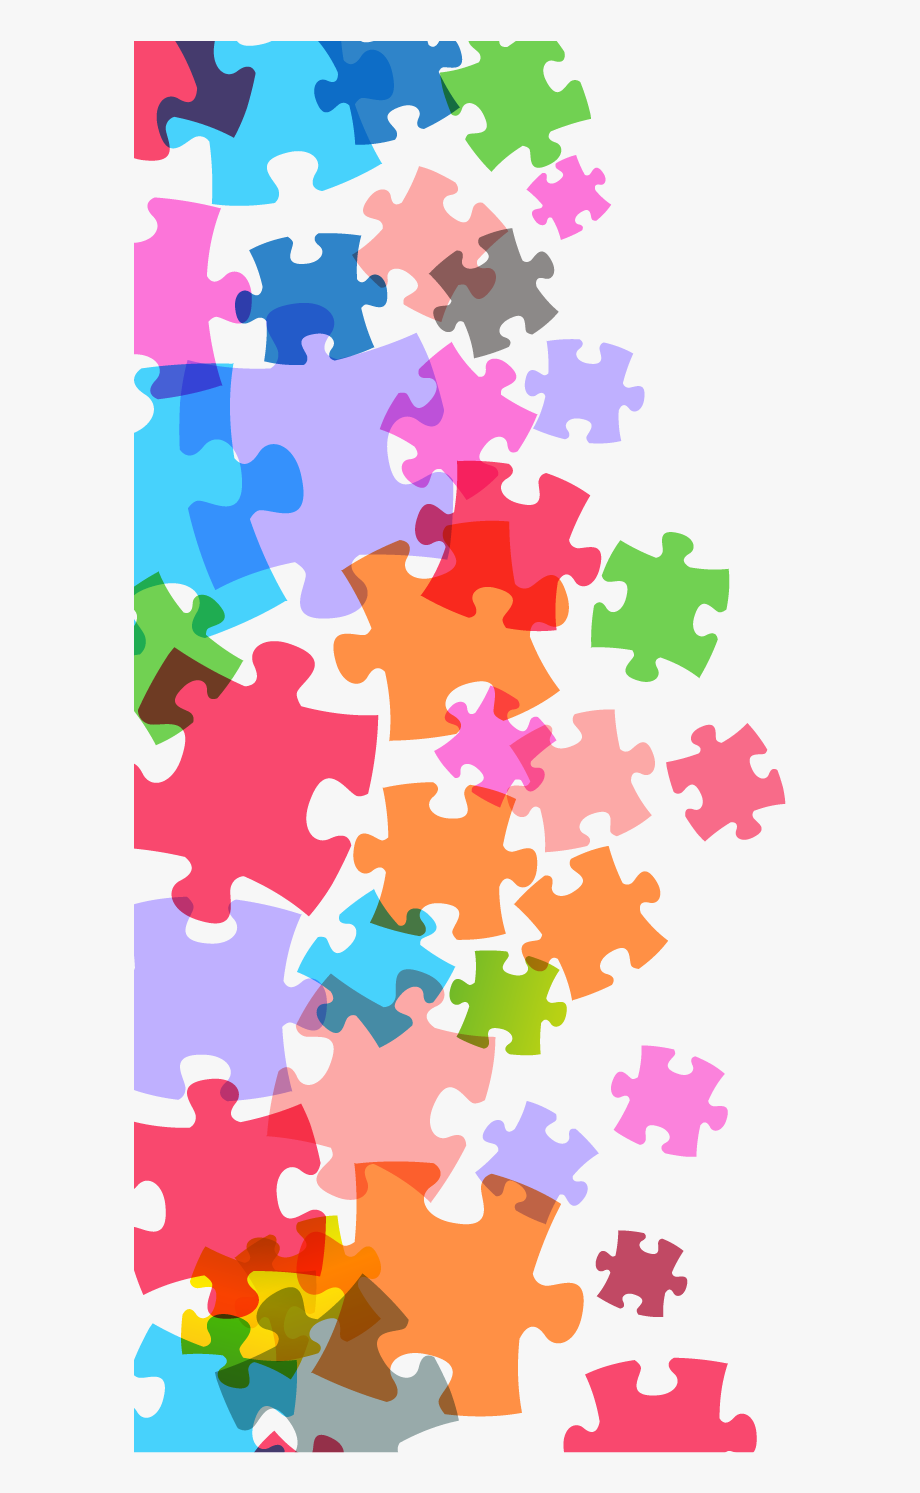 Share this article pieces. Puzzle clipart background